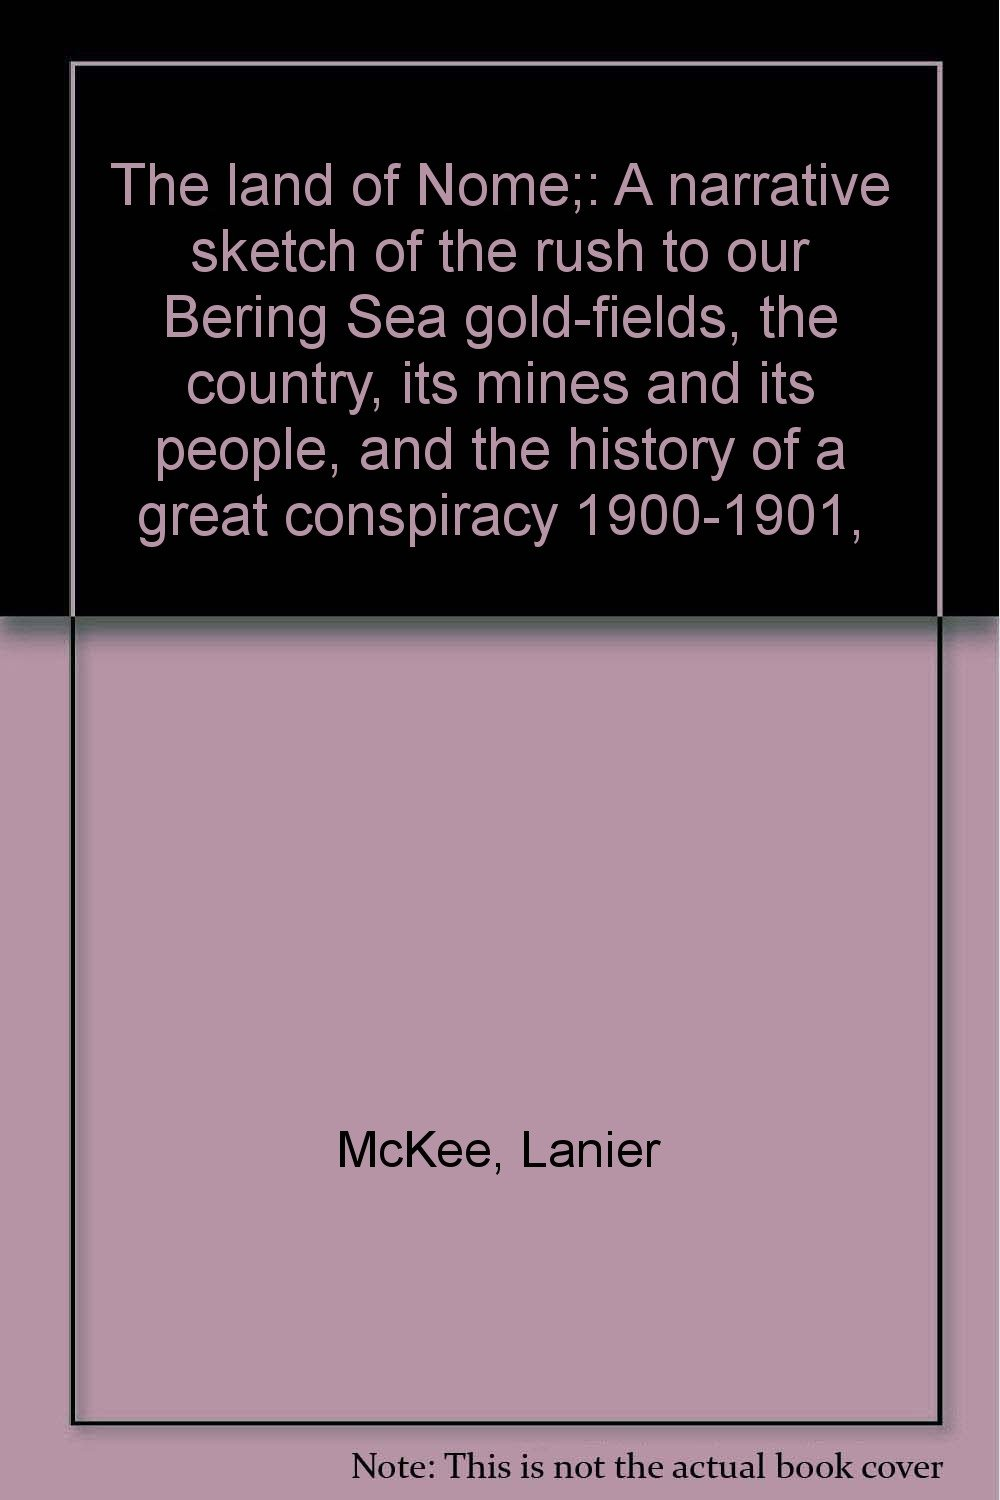 The land of Nome;: A narrative sketch of the rush to our Bering Sea gold-fields, the country, its mines and its people, and the history of a great conspiracy 1900-1901,